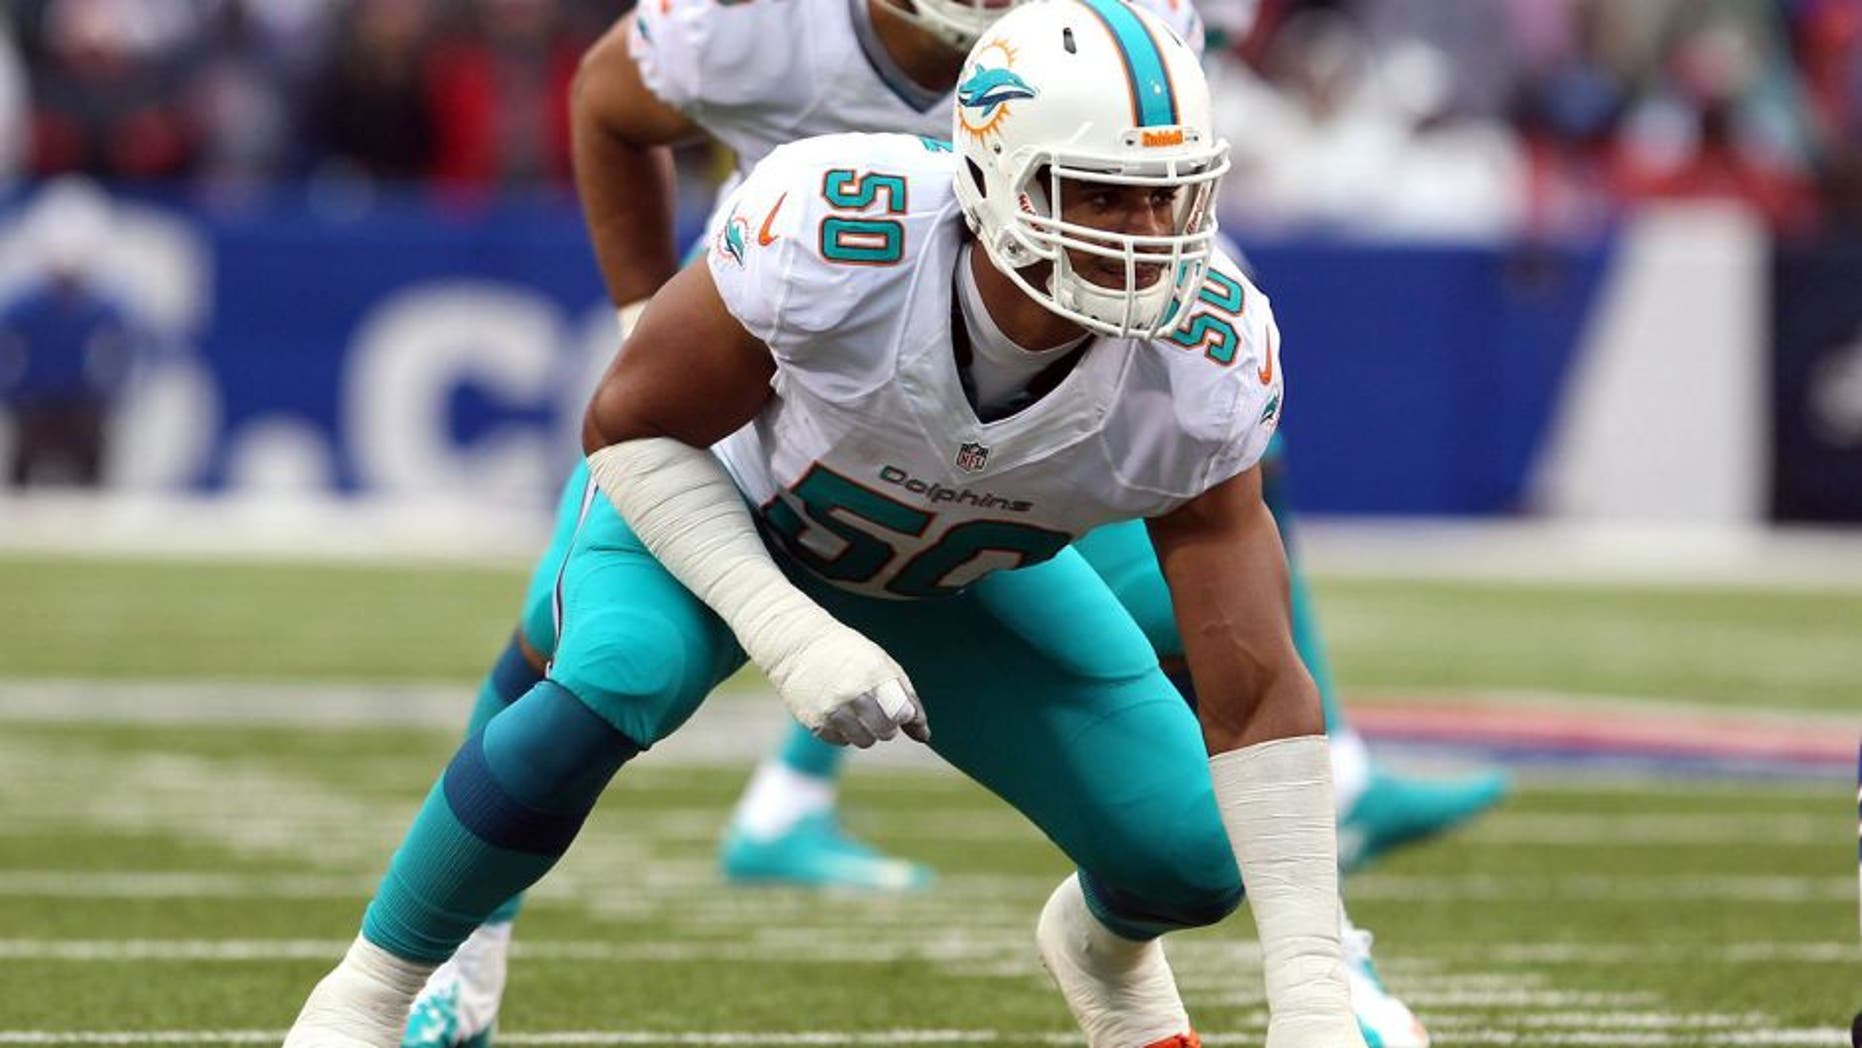 Dec 22, 2013; Orchard Park, NY, USA; Miami Dolphins defensive end Olivier Vernon (50) waits for the snap against the Buffalo Bills at Ralph Wilson Stadium. Mandatory Credit: Timothy T. Ludwig-USA TODAY Sports